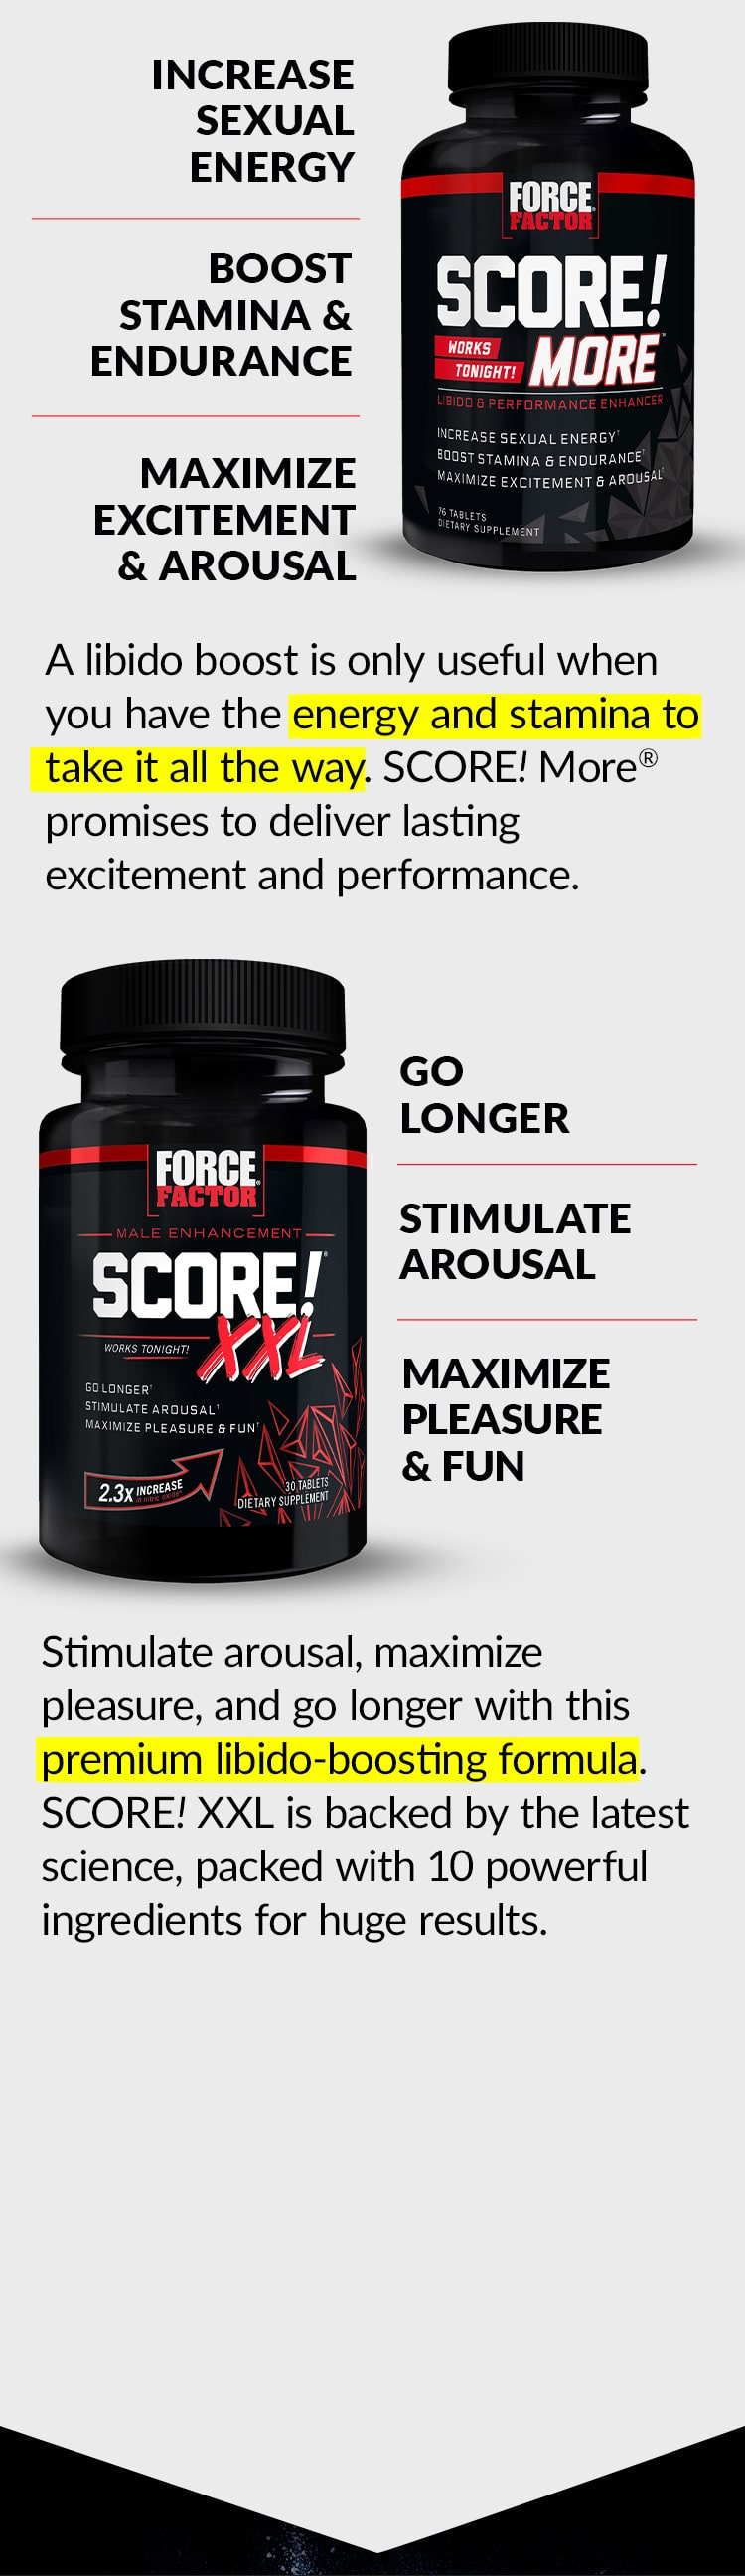 A libido boost is only useful when you have the energy and stamina to take it all the way. SCORE! More promises to deliver lasting excitement and performance. INCREASE SEXUAL ENERGY, BOOST STAMINA & ENDURANCE, MAXIMIZE EXCITEMENT & AROUSAL. Stimulate arousal, maximize pleasure, and go longer with this premium libido-boosting formula. SCORE! XXL is backed by the latest science, packed with 10 powerful ingredients for huge results. GO LONGER, STIMULATE AROUSAL, MAXIMIZE PLEASURE AND FUN.